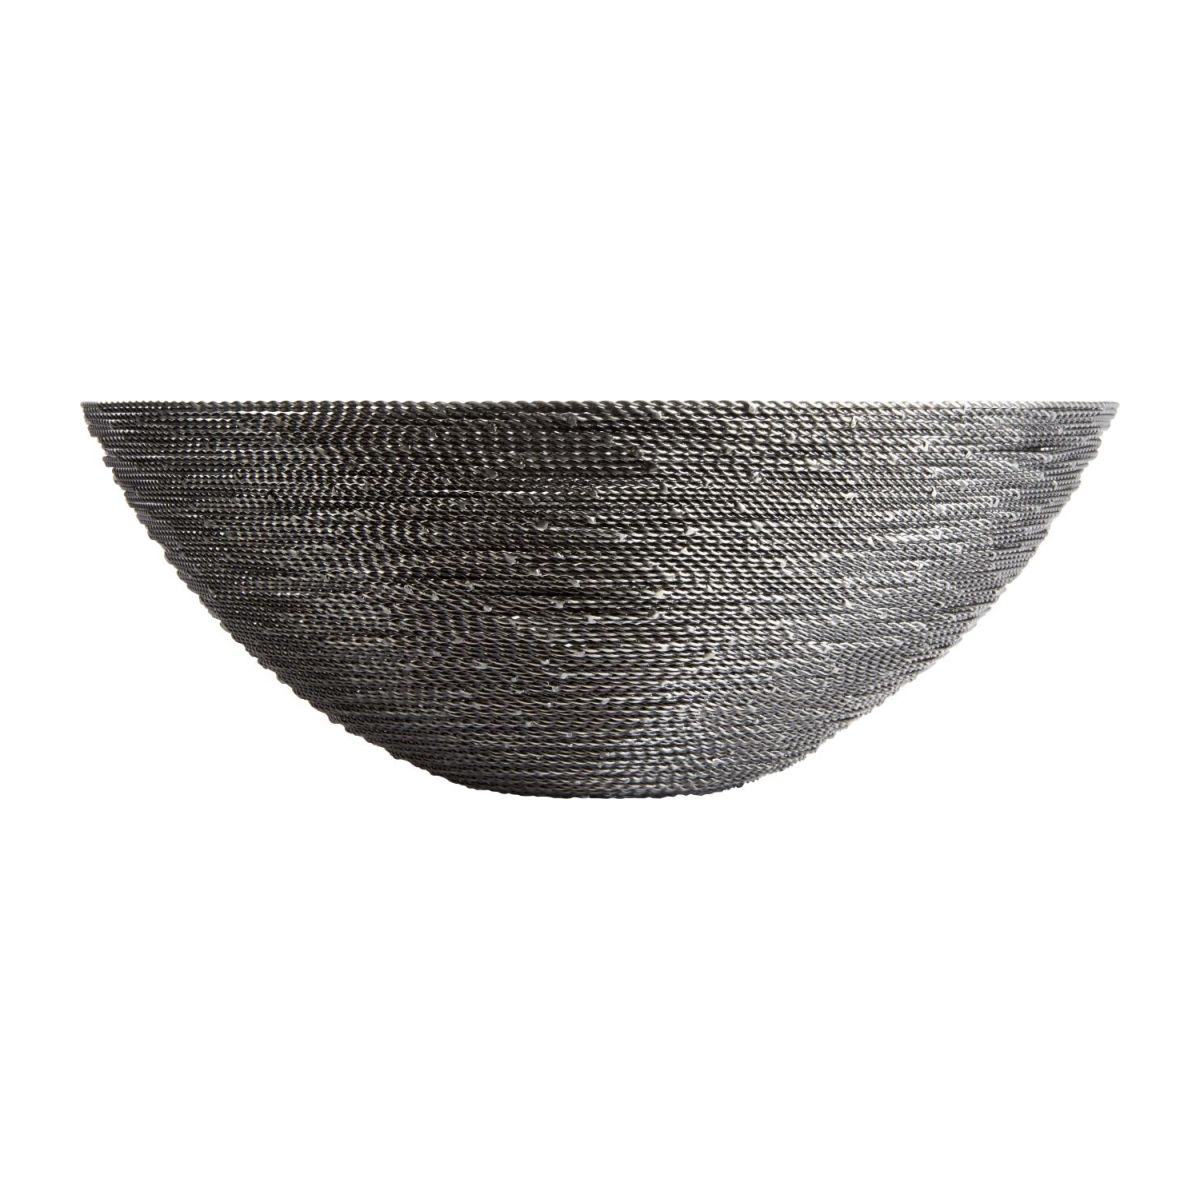 Large grey twisted wire bowl n°2